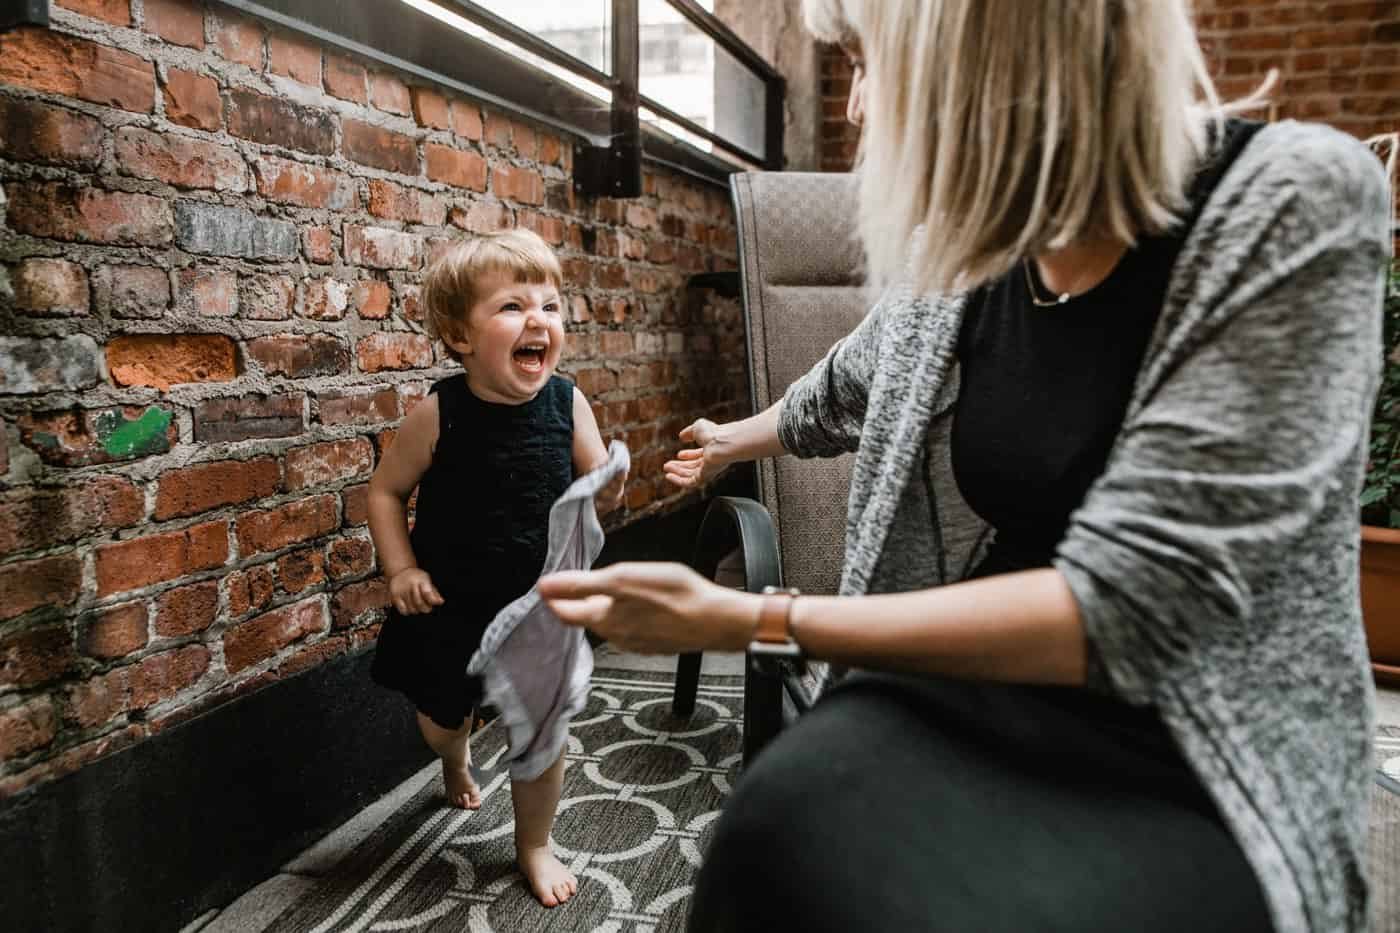 Young girl running towards mom laughing